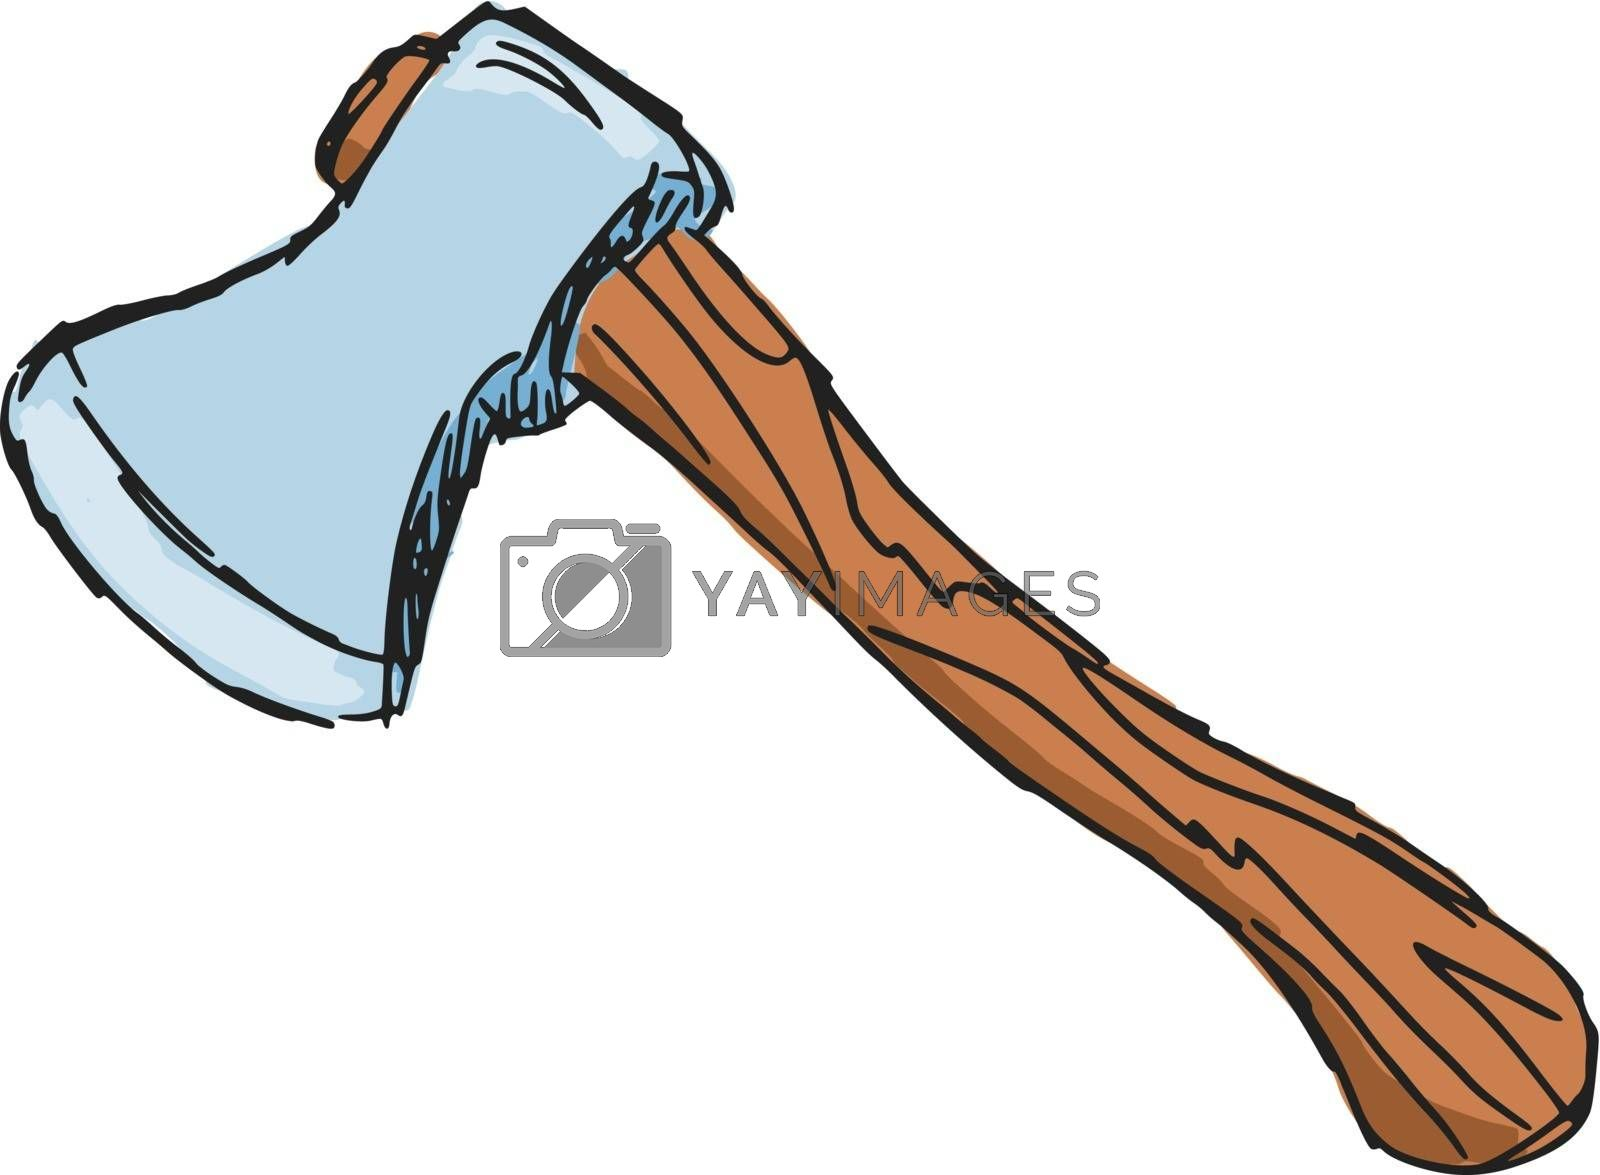 Royalty free image of an axe by Perysty